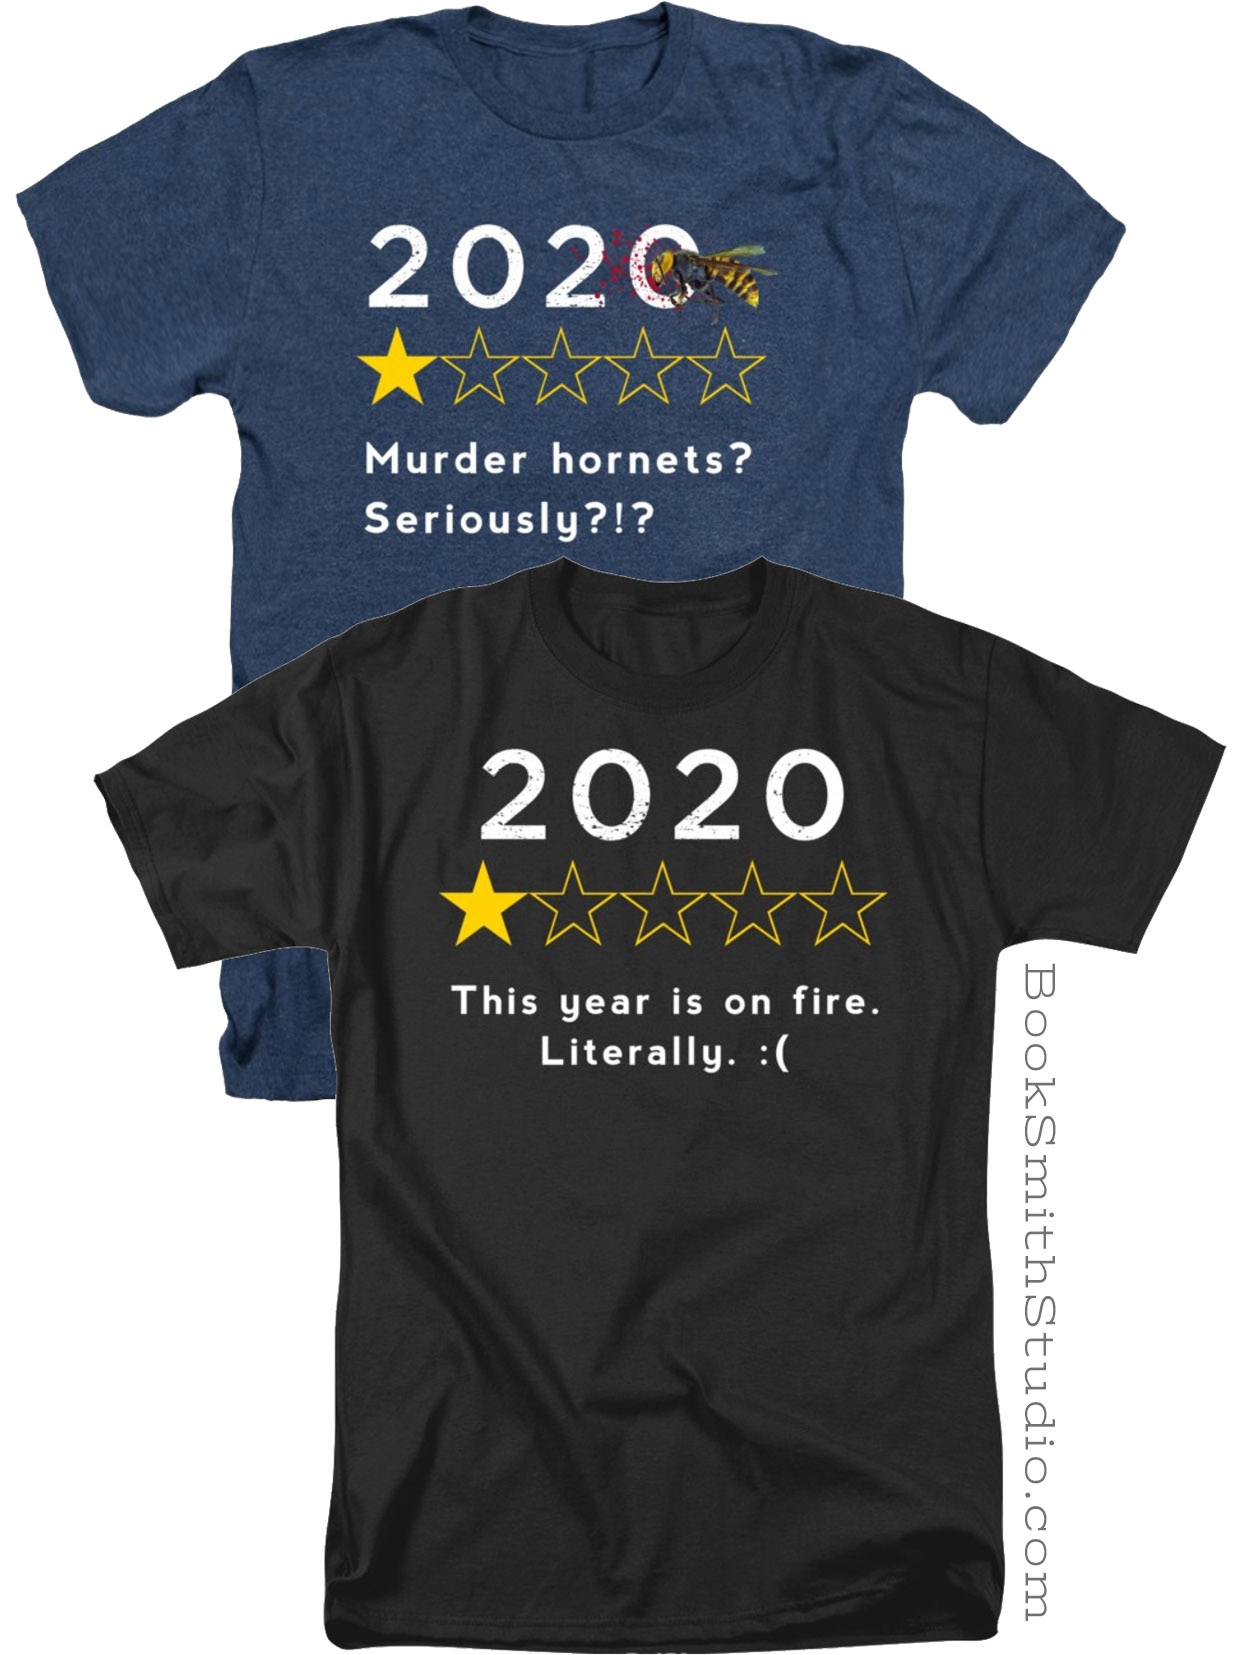 2020 Review t-shirts: Murder hornets? Seriously?